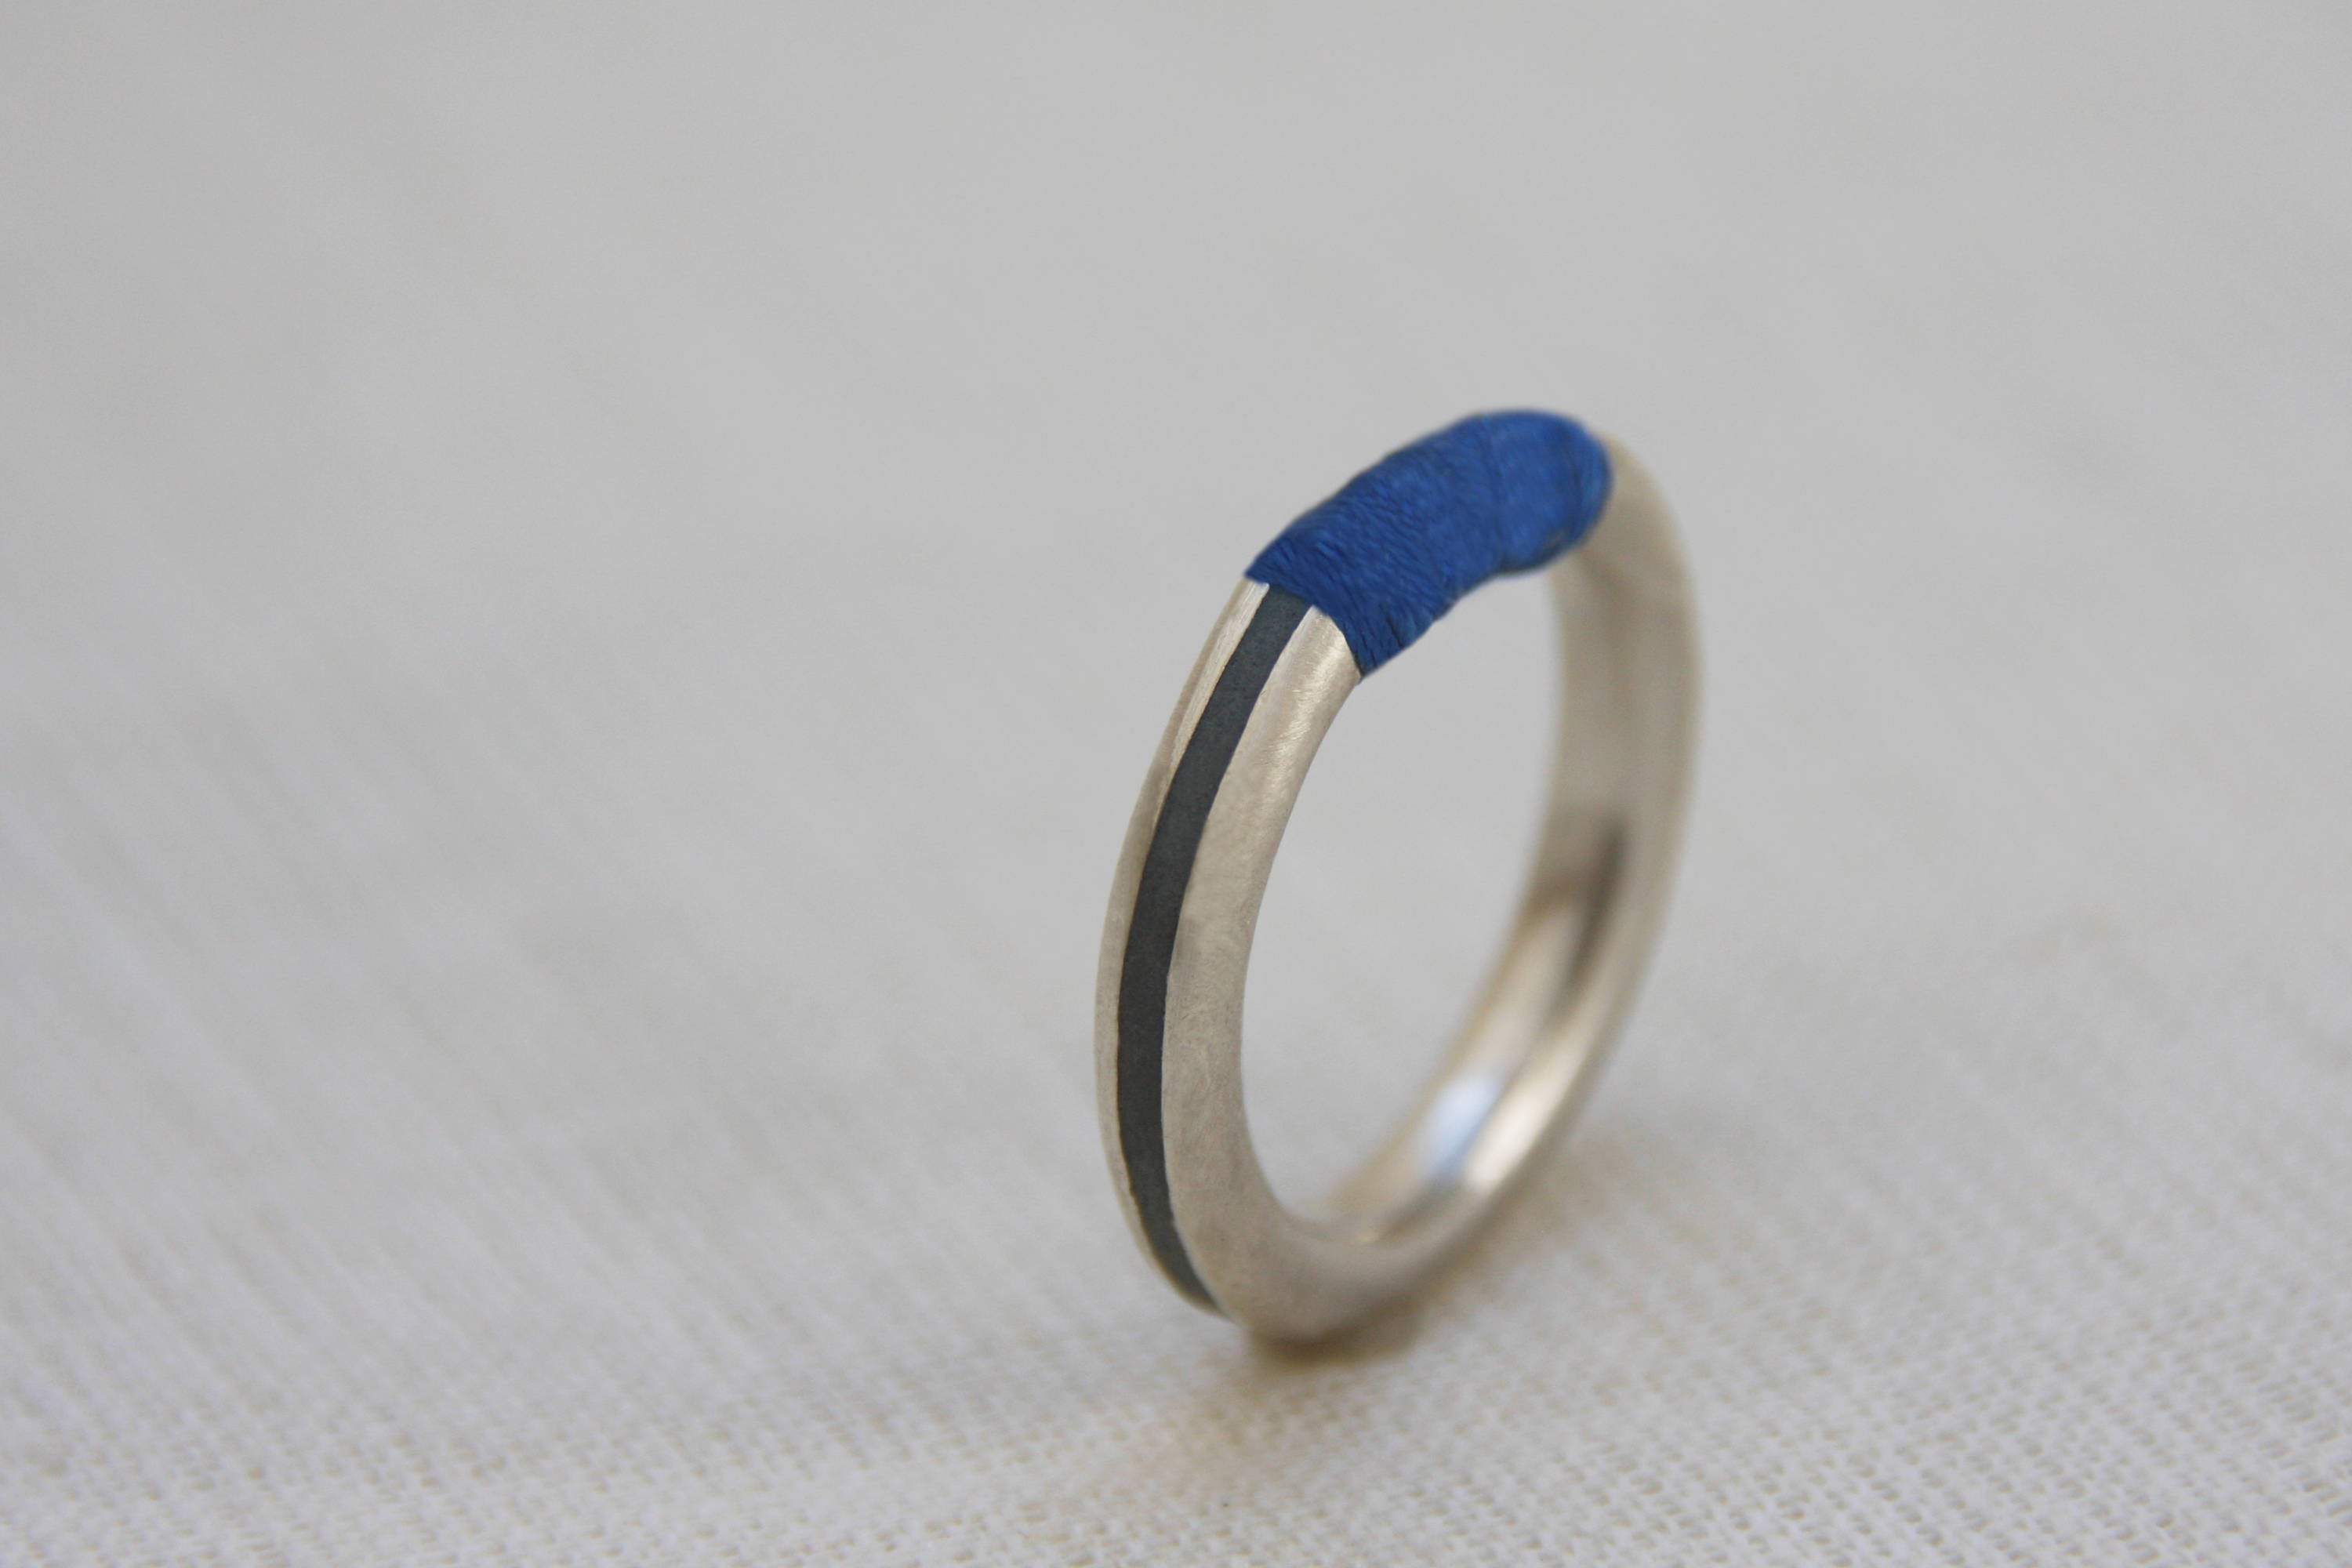 Silver and blue ring, Silver and concrete band, Minimalist Silver Ring, Contemporary ring, modern ring, stacking ring, fashion unique ring - hs